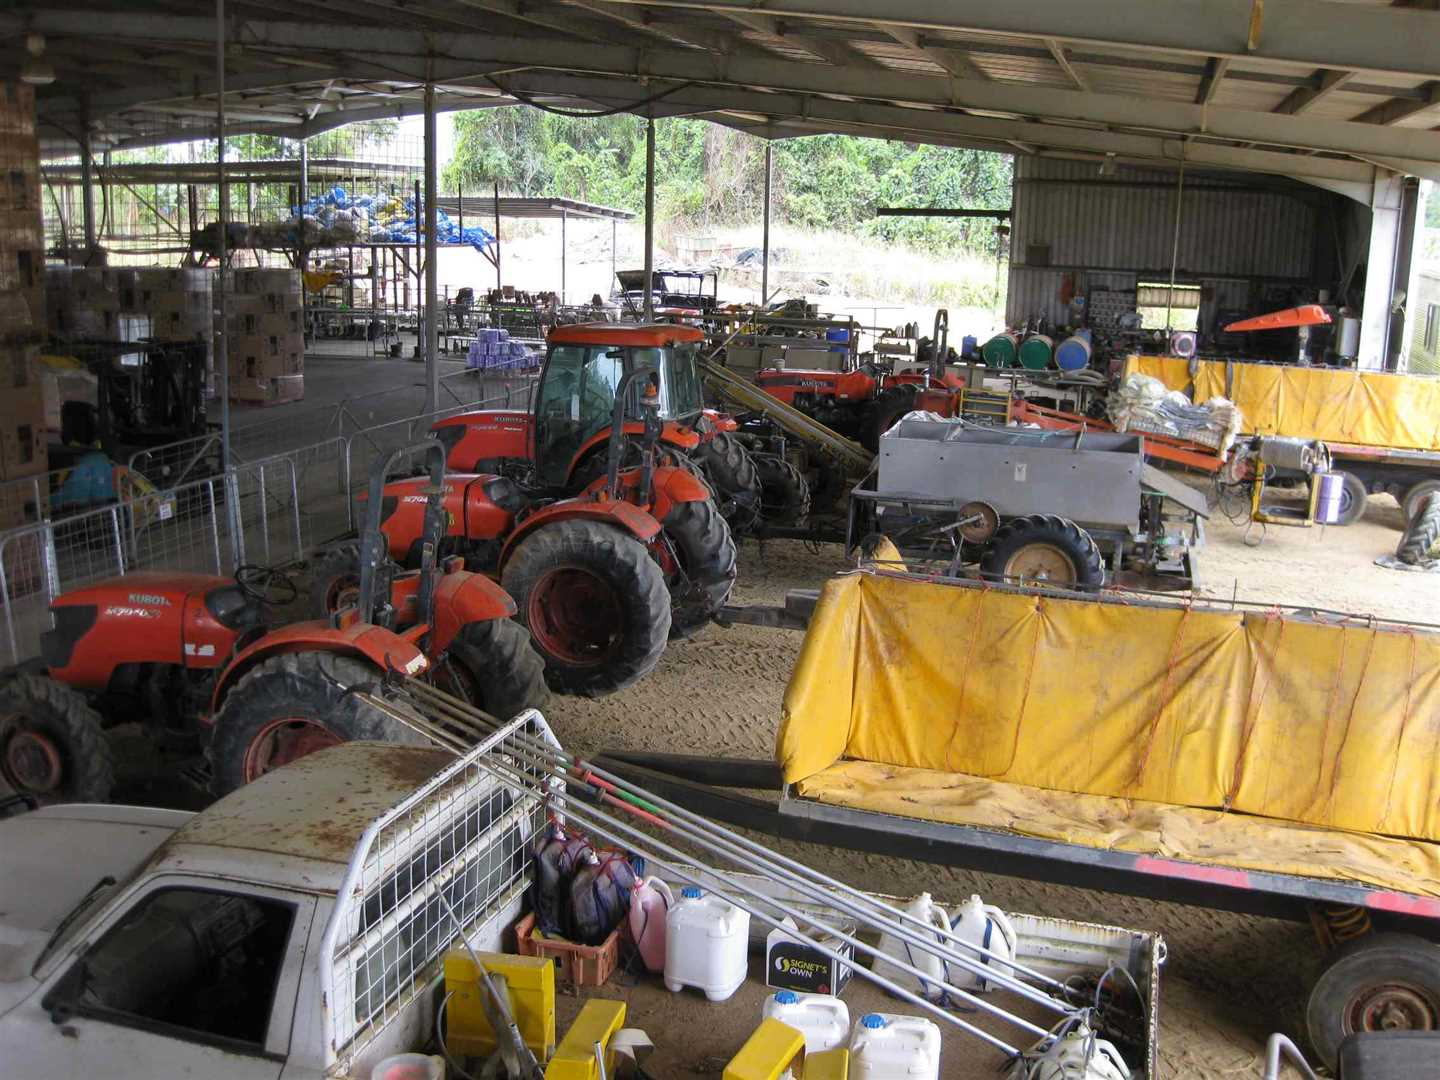 View of part of inside packing shed showing part of machinery storage area